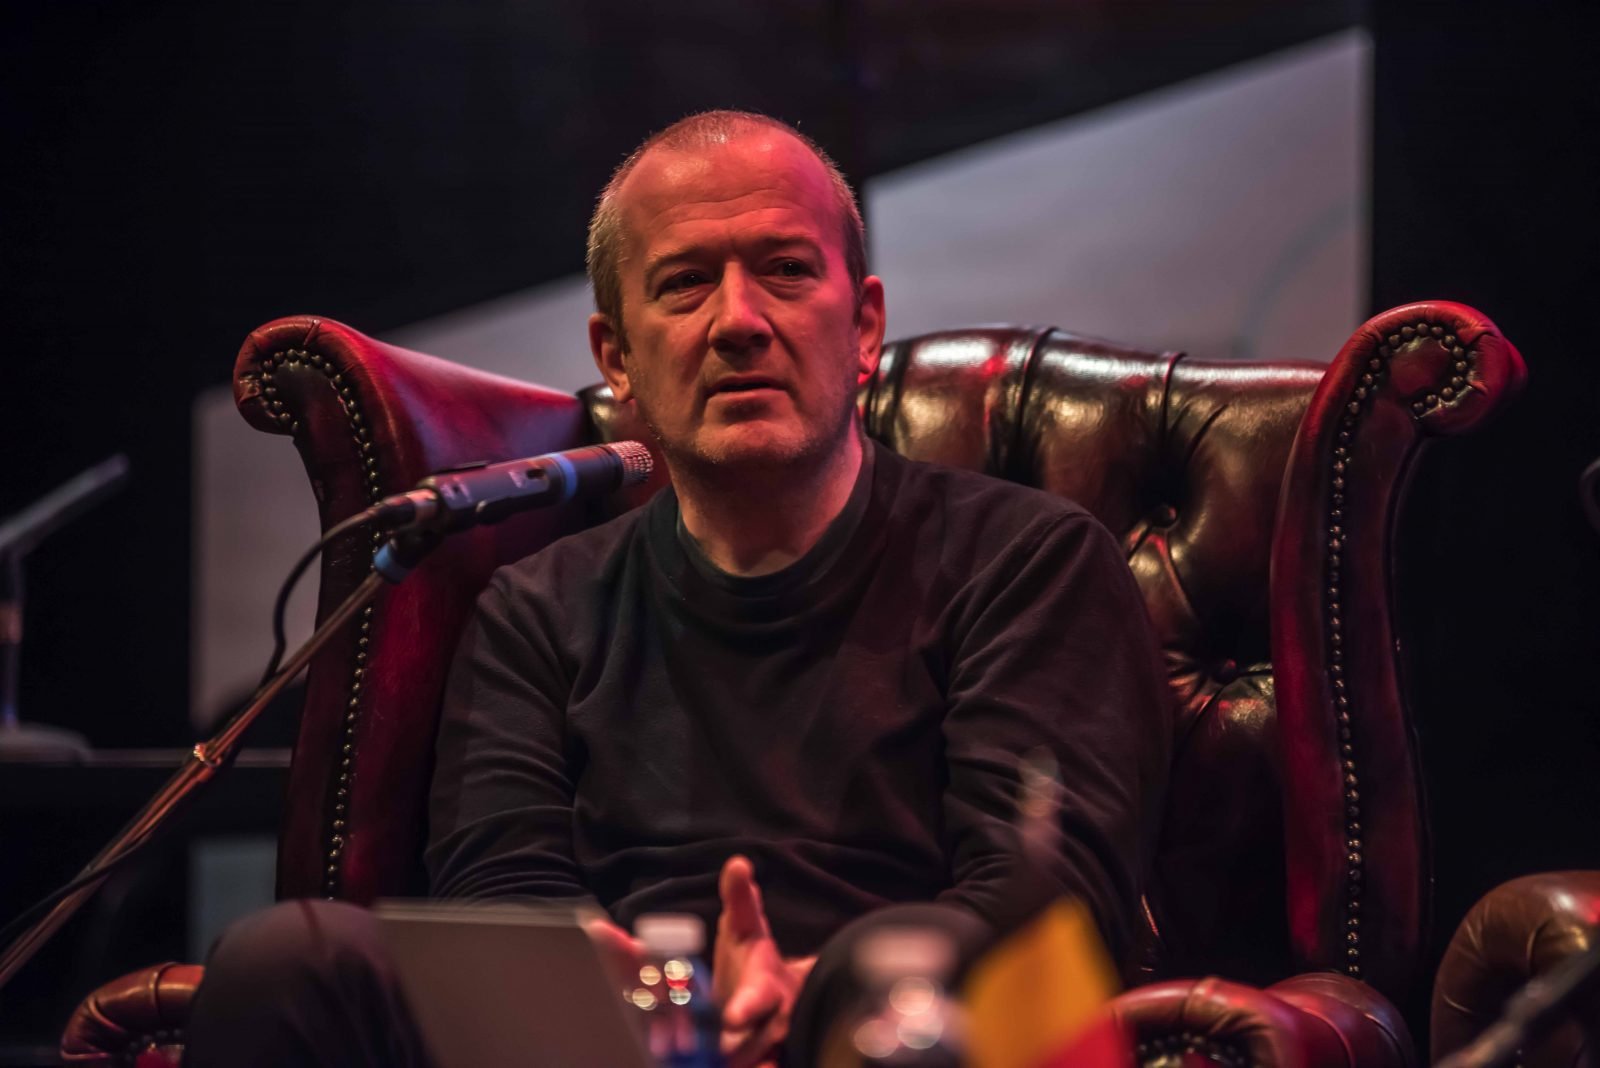 Writer Garth Ennis at the Lakes International Comic Art Festival 2019. Photo: Chris Payne for LICAF